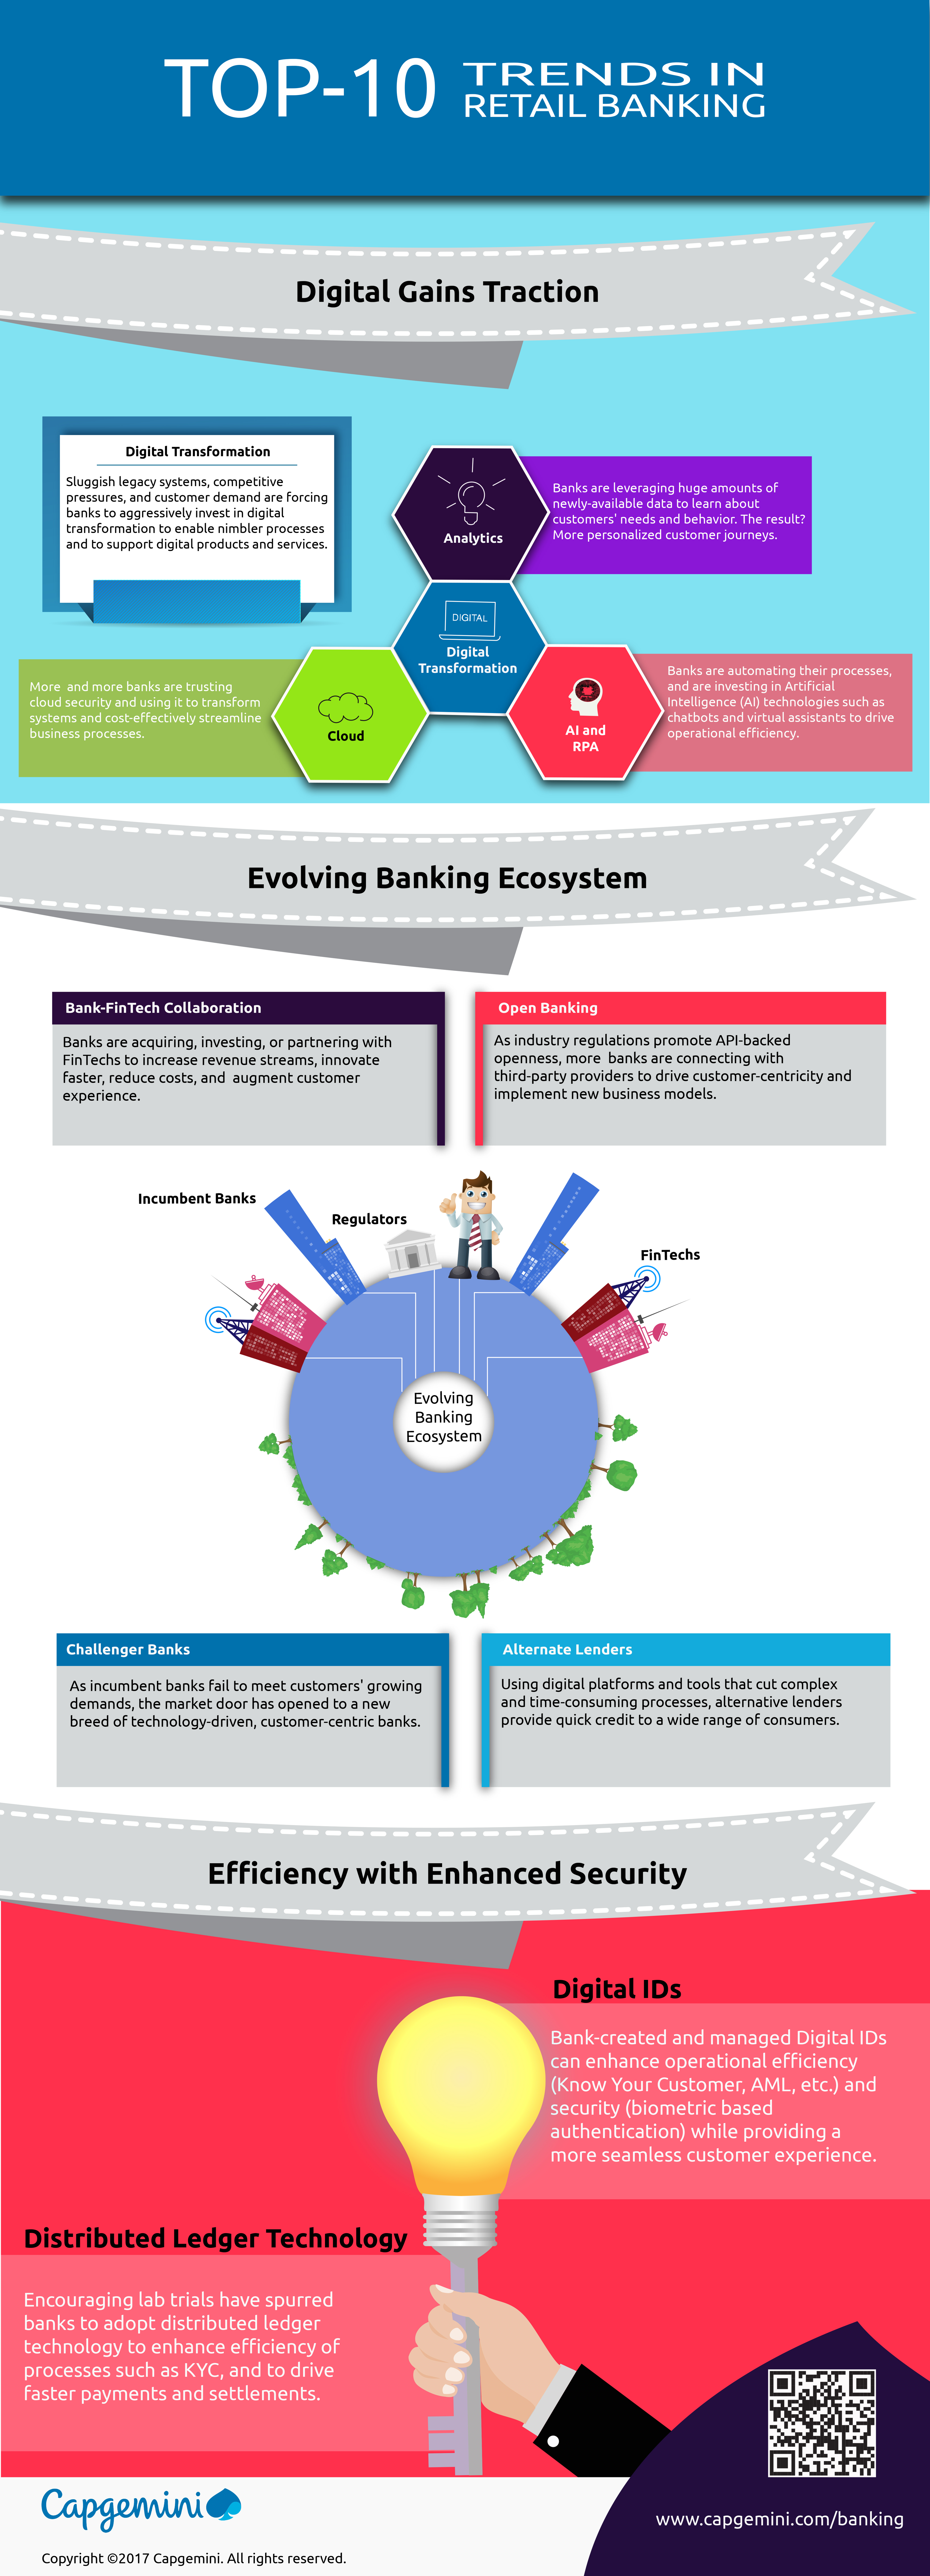 Infographic: Top-10 Trends in Retail Banking: 2018